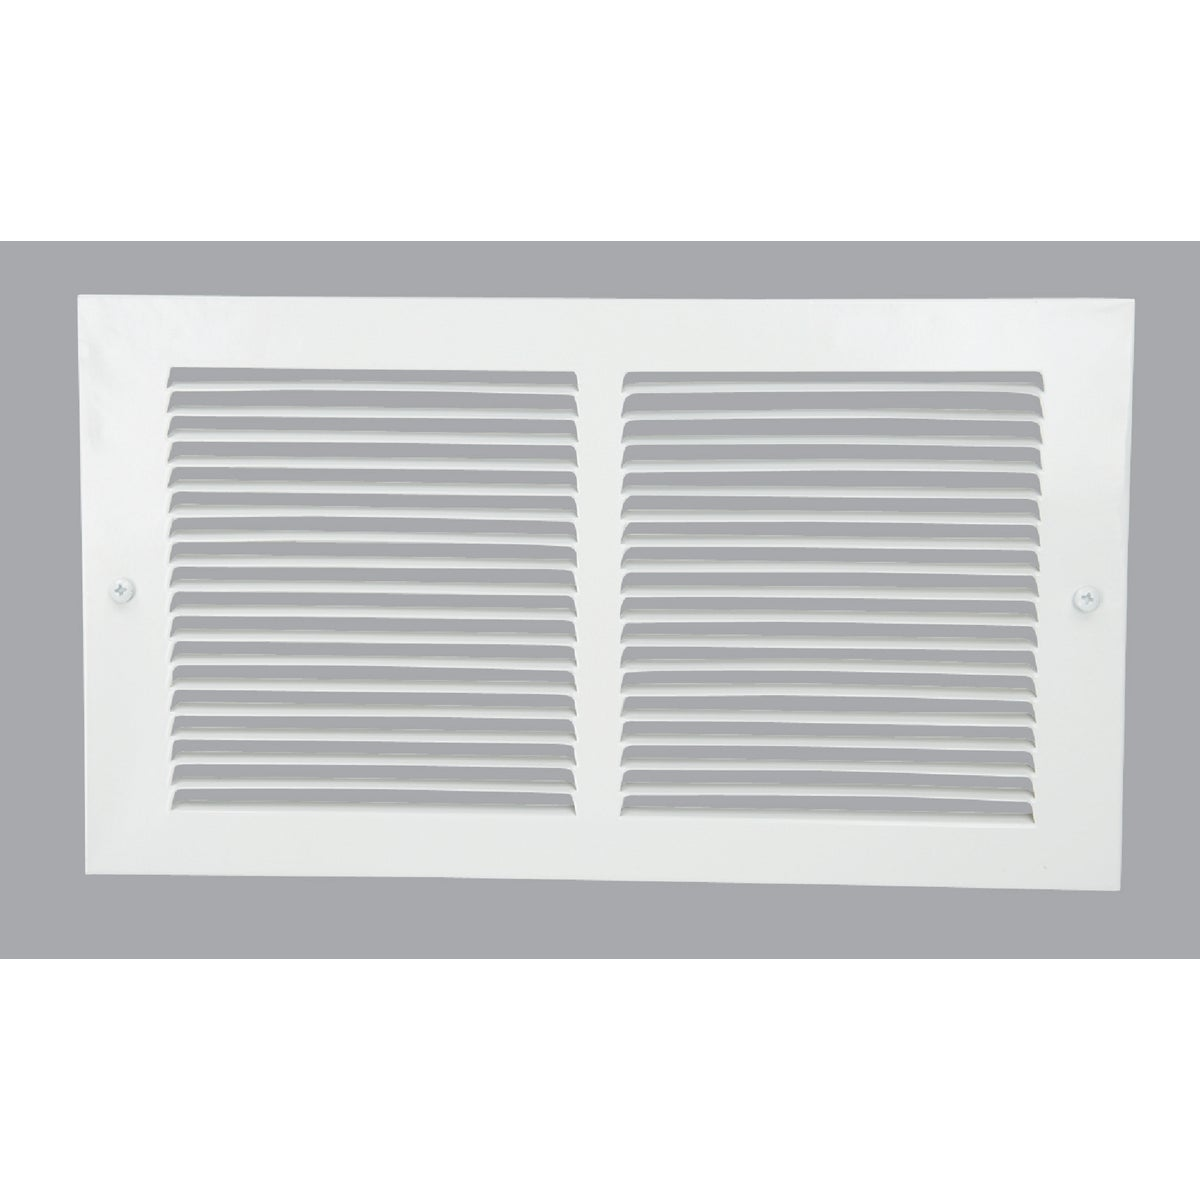 6X12WH RETURN AIR GRILLE - BBGT1206WH by Do it Best